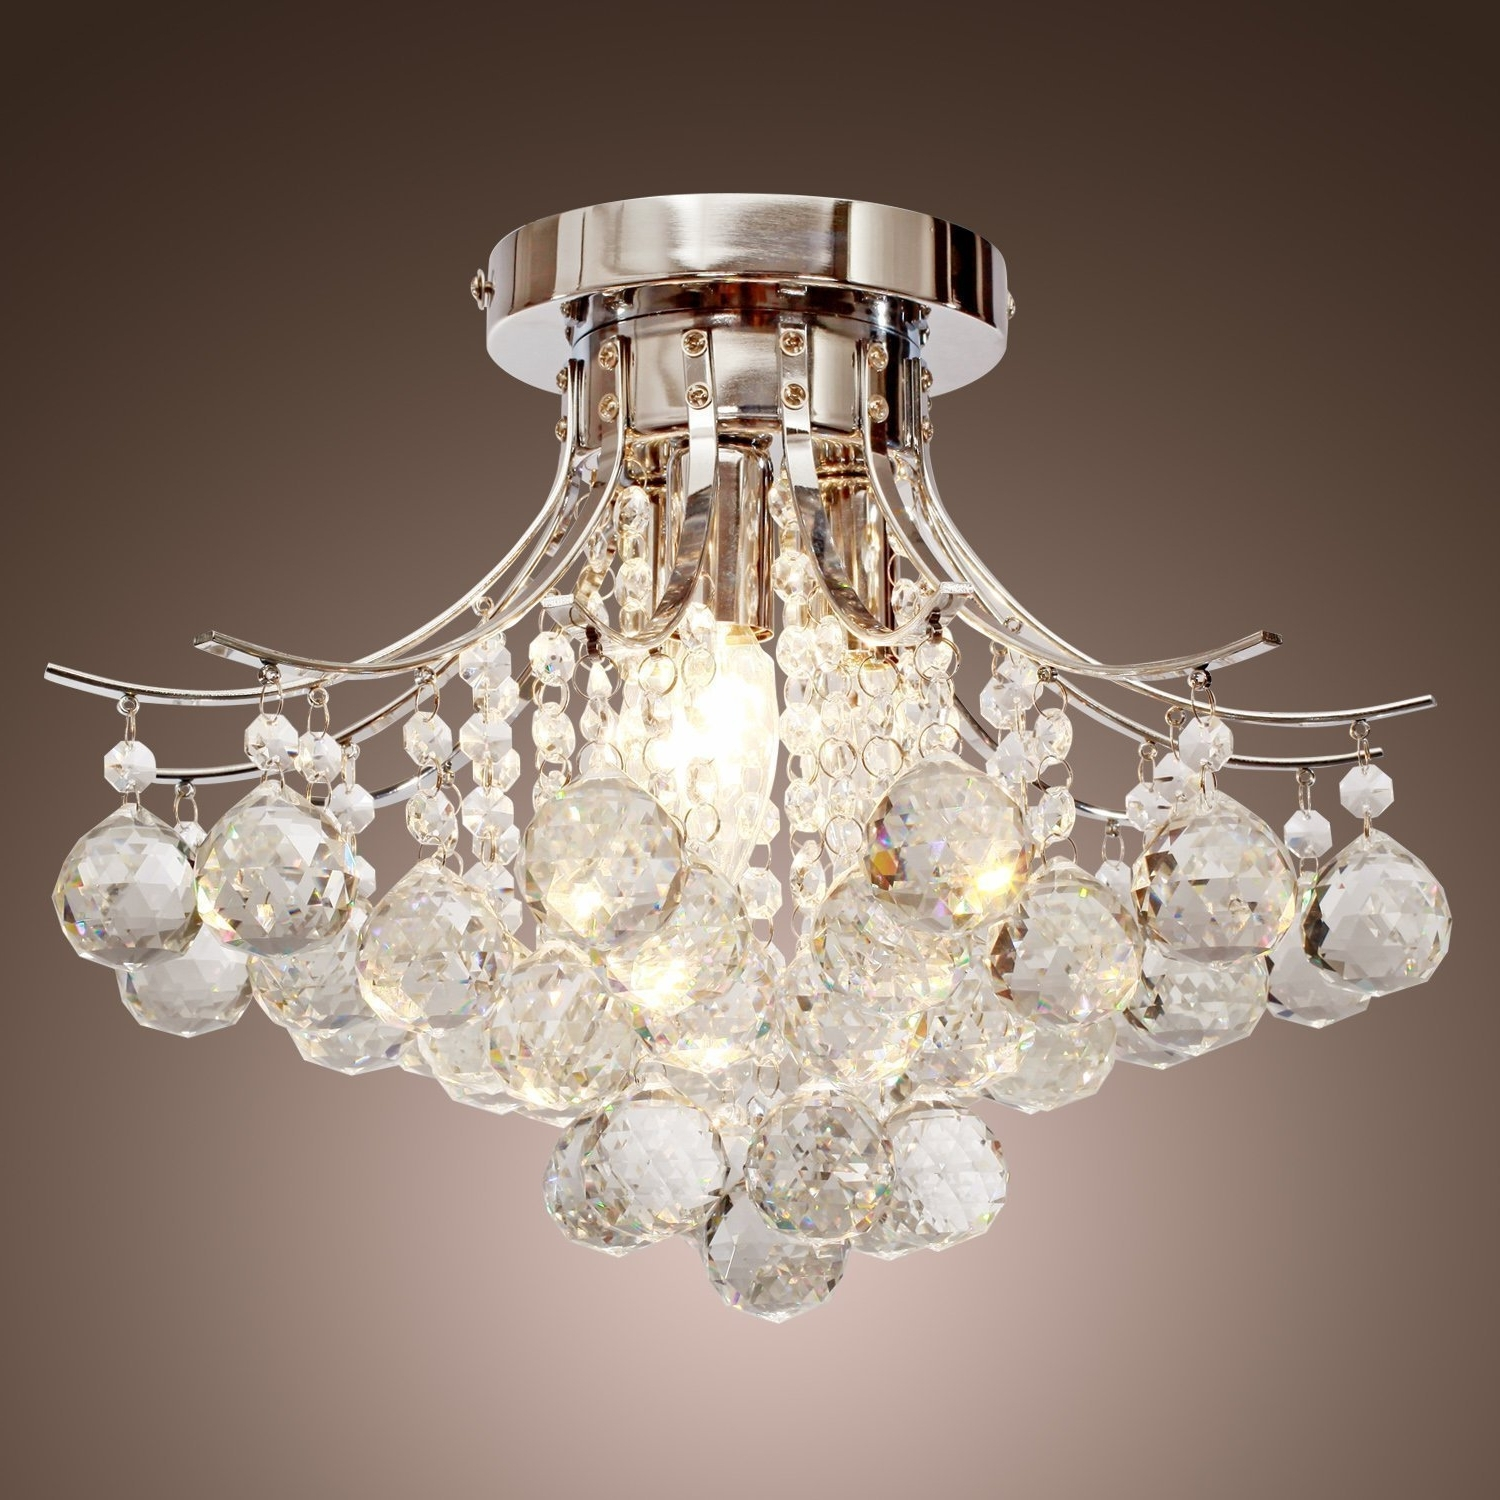 Most Popular Locoâ Chrome Finish Crystal Chandelier With 3 Lights, Mini Style With Tiny Chandeliers (View 7 of 15)